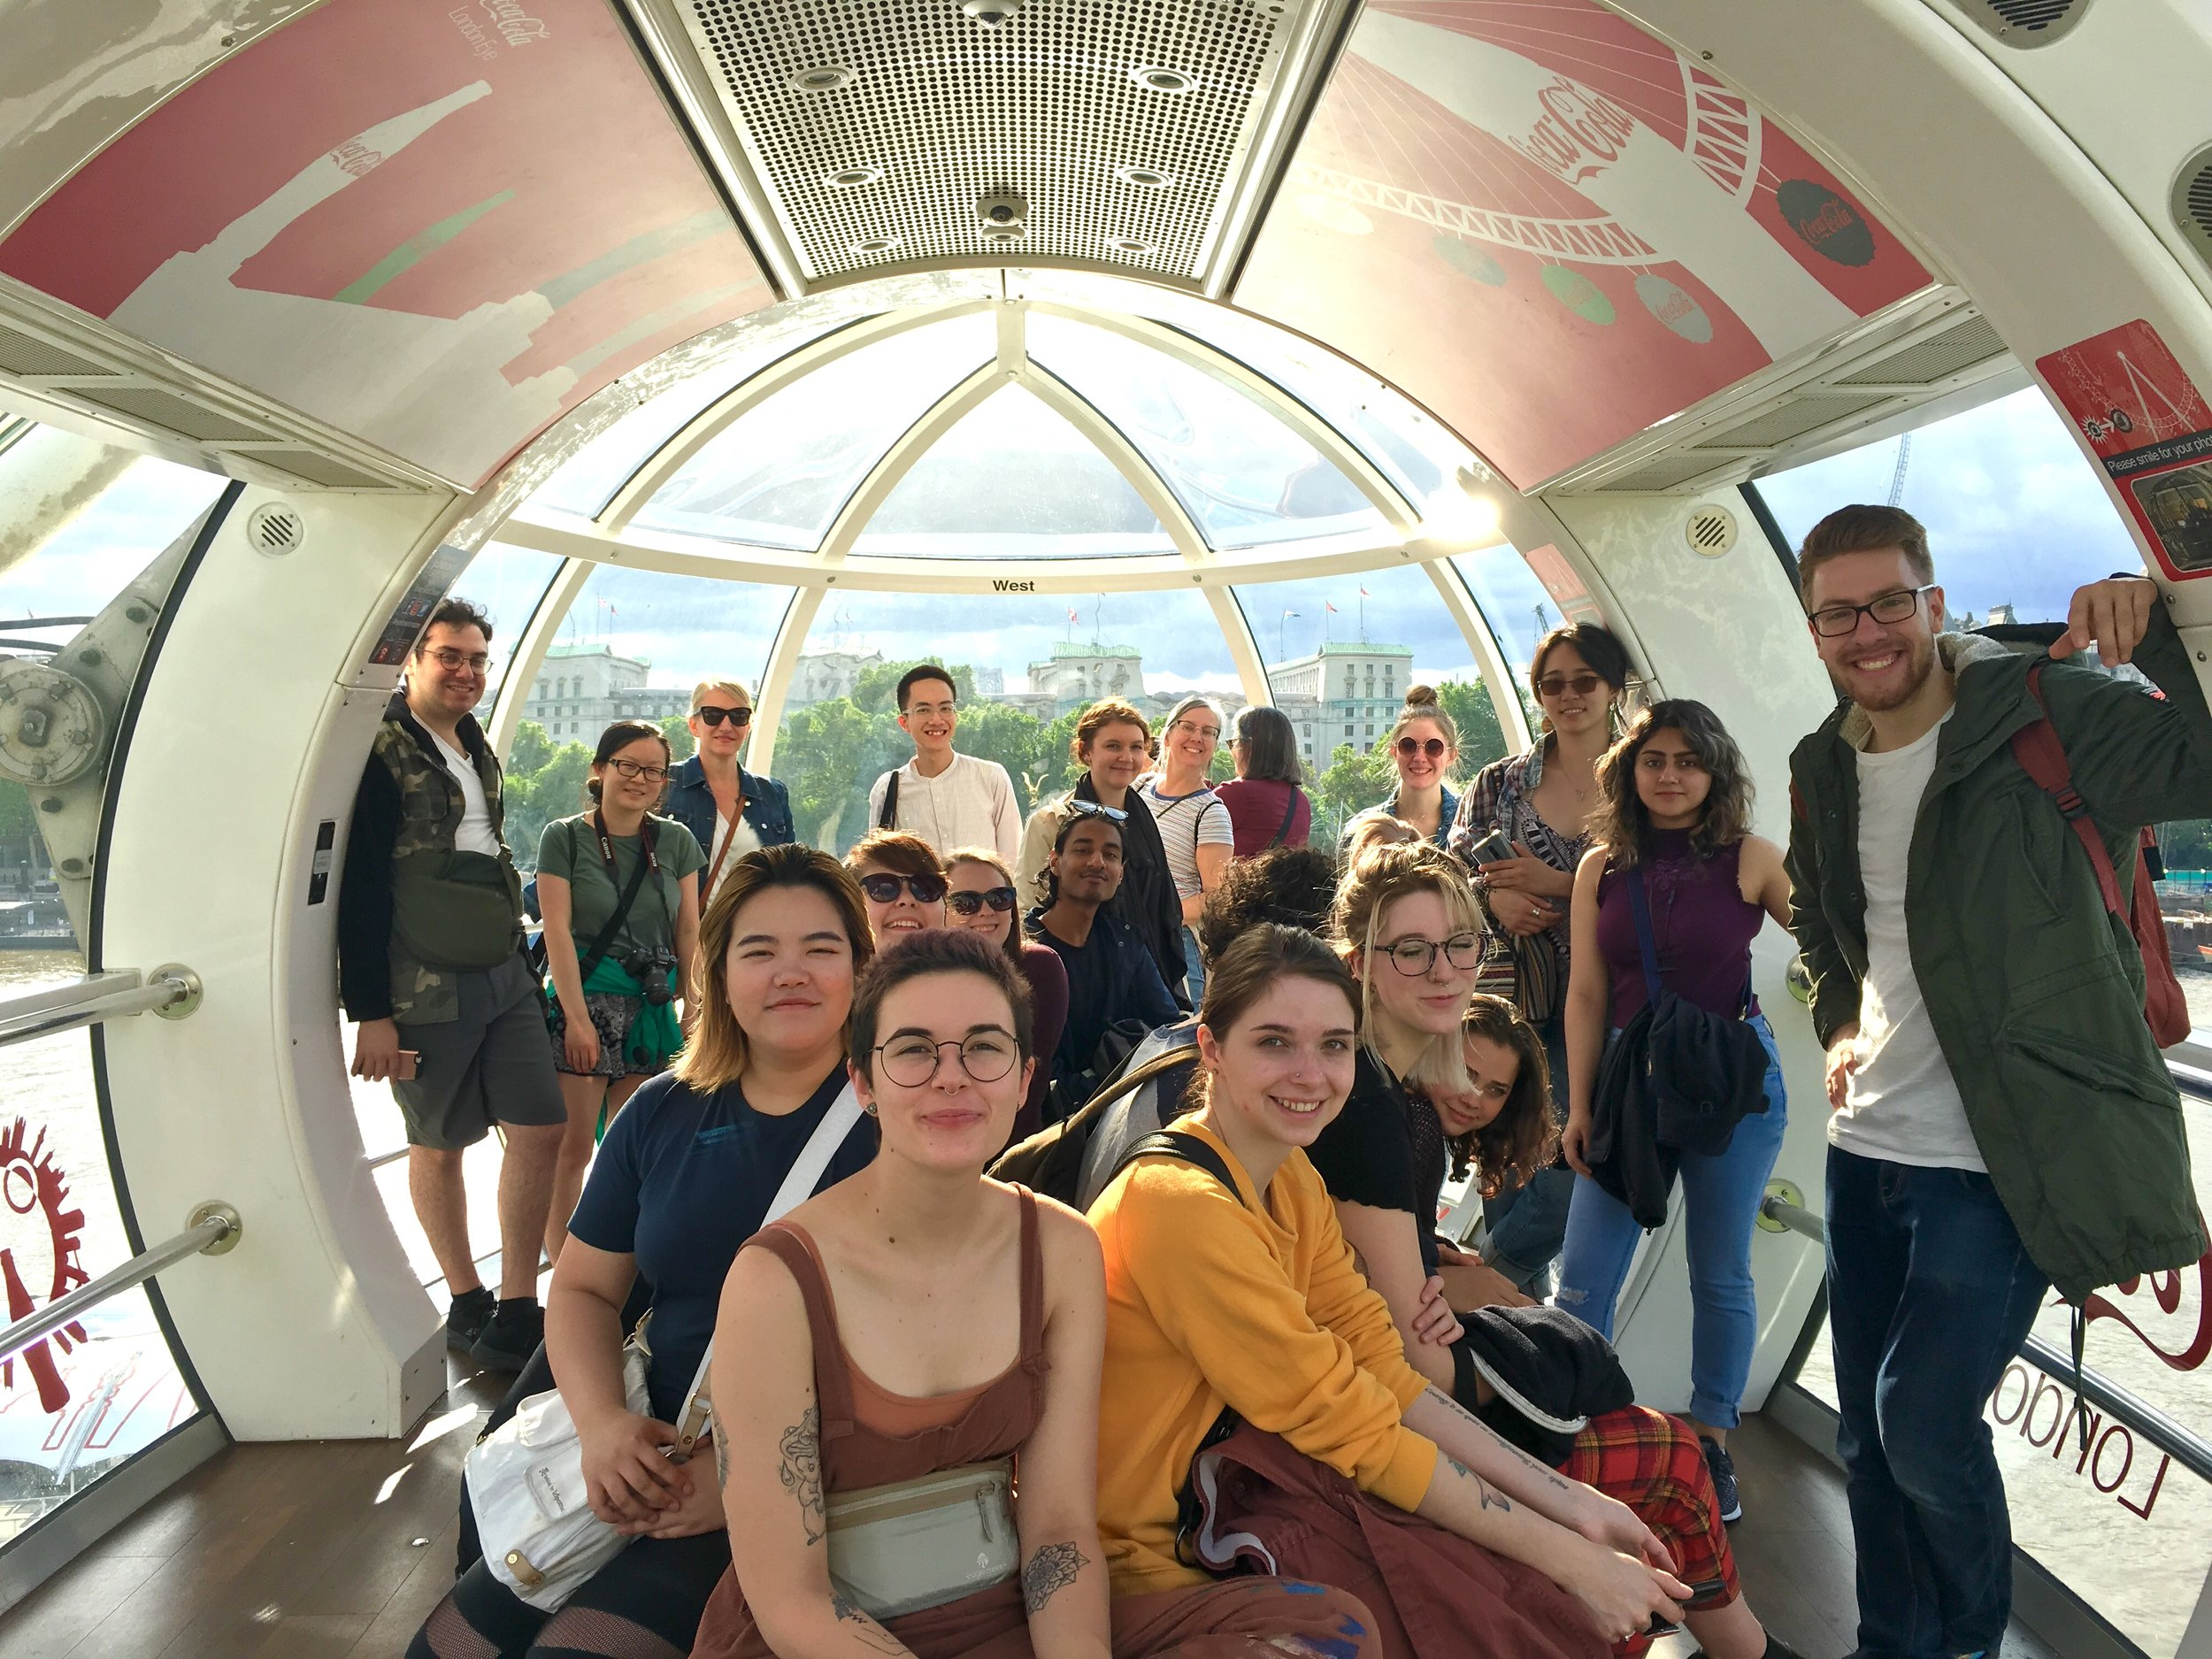 Up over the city on the London Eye— a great group shot with Reggie in the front far right hand corner of the image.